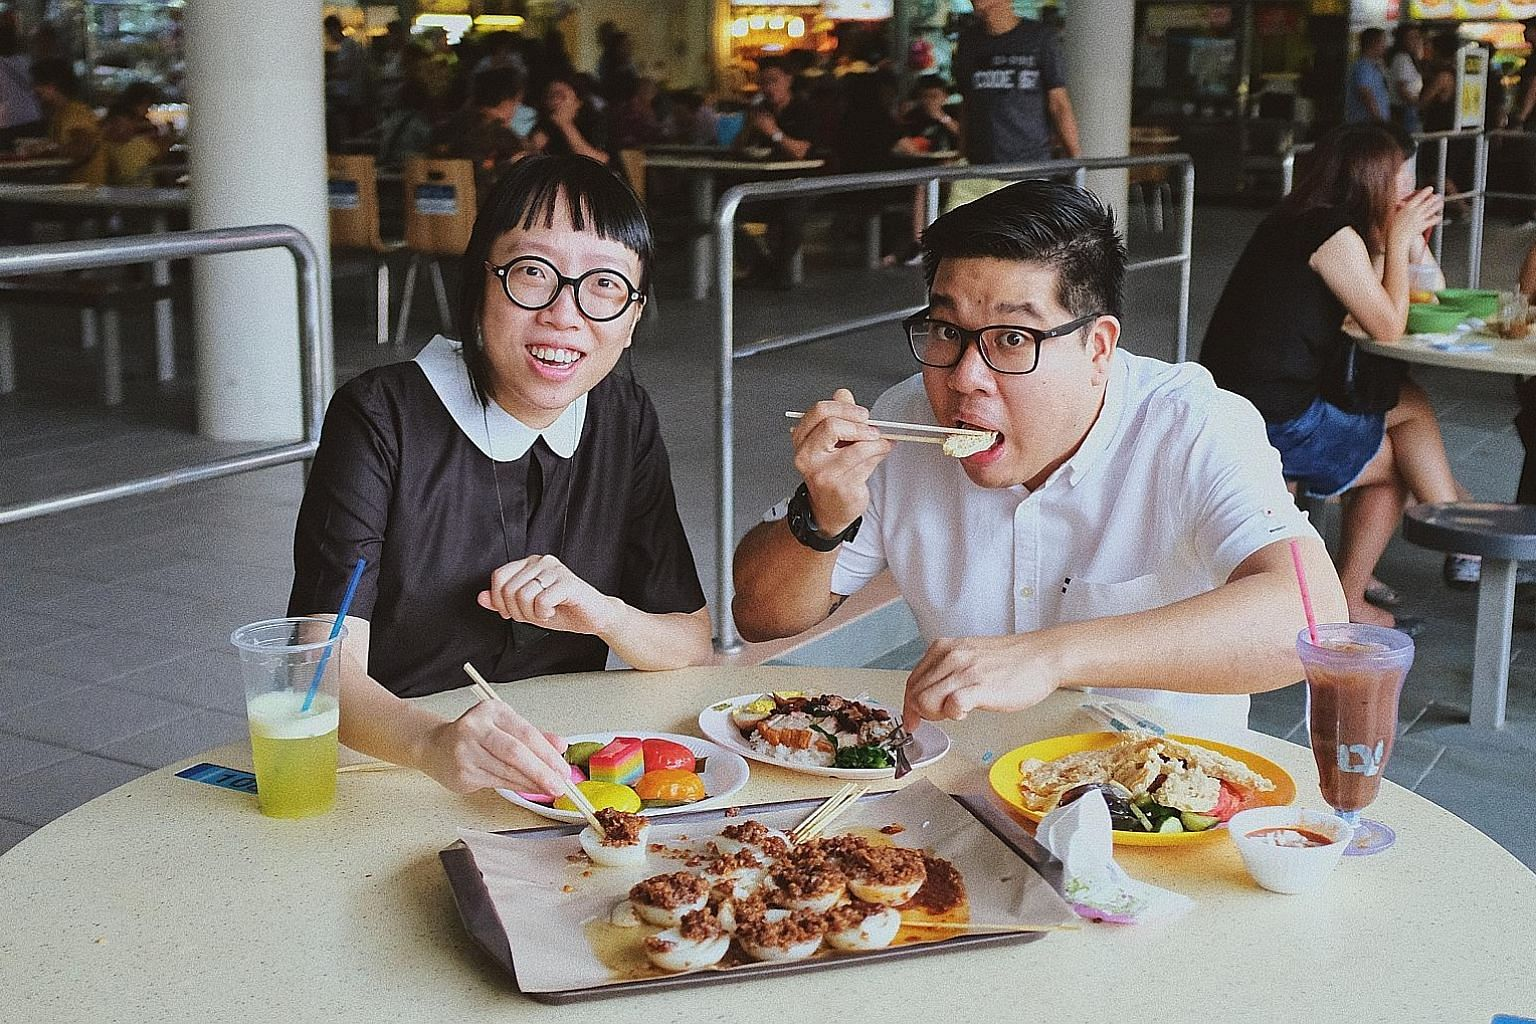 Chef Ming Tan and visual artist Debbie Ding collaborate on SAD: The Last Meal, a dystopian dining experience with hawker fare that takes on different textures, forms and ingredients.